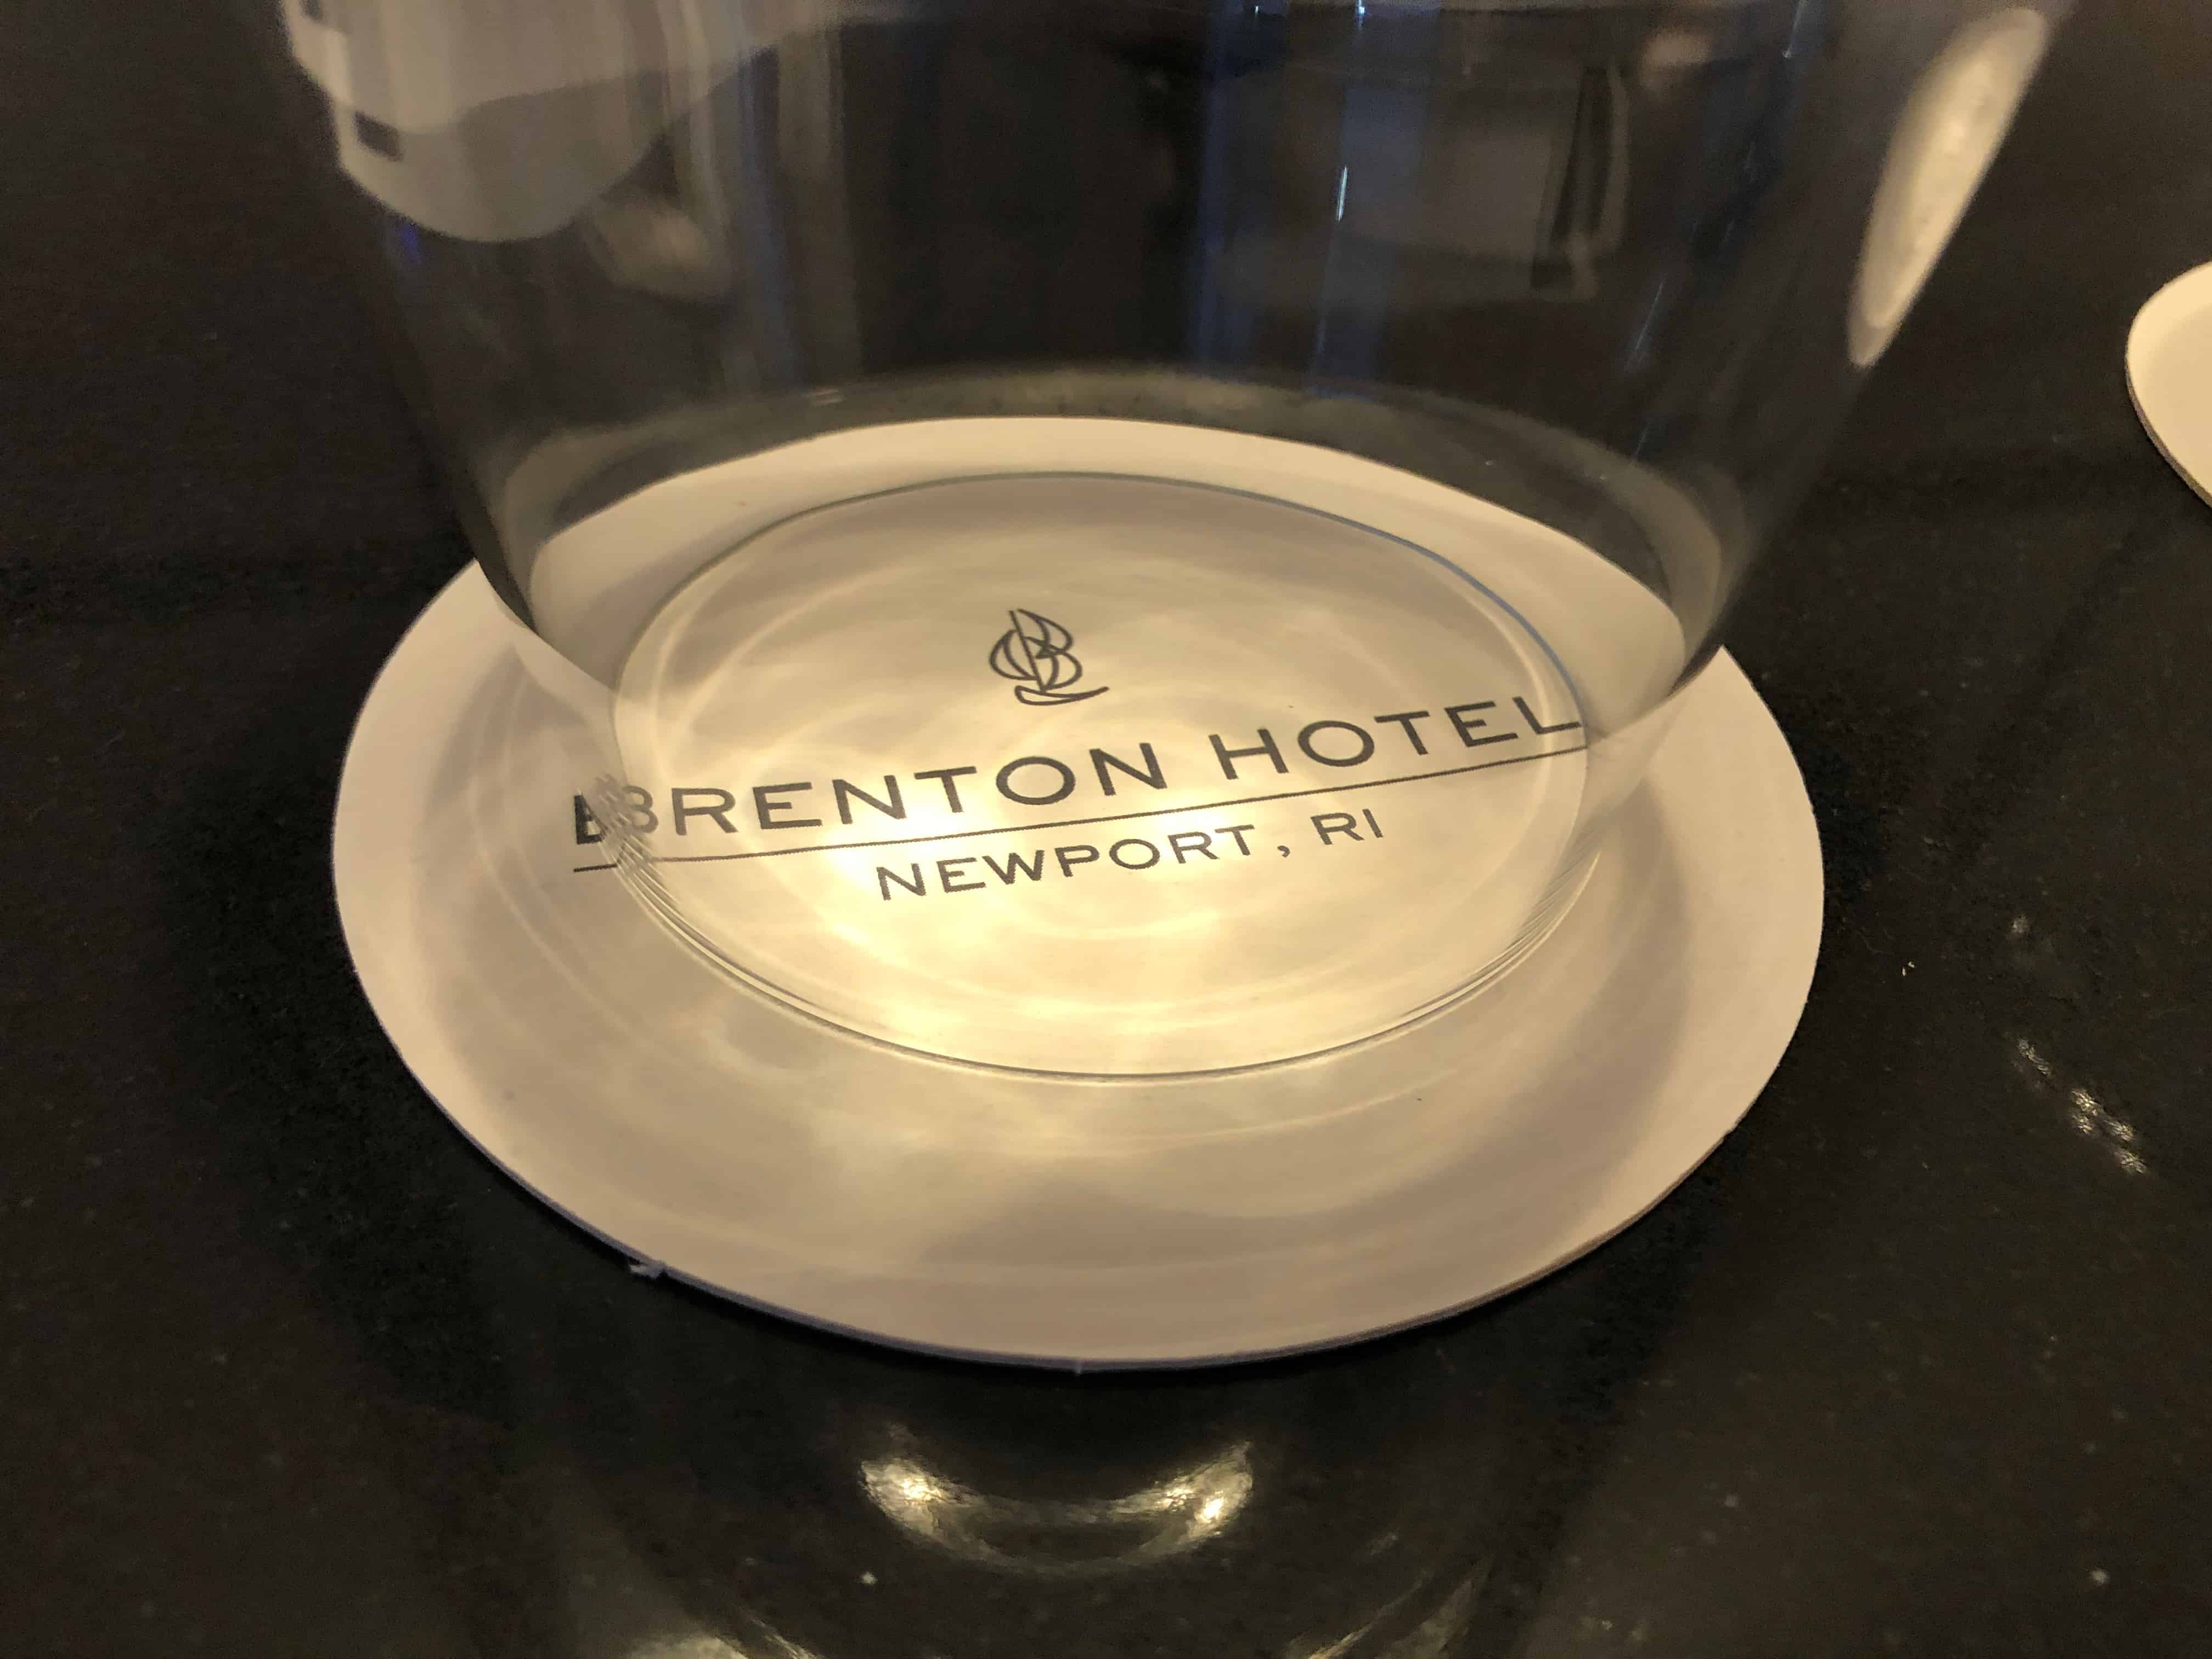 The Brenton Hotel features high end accommodations and water views.